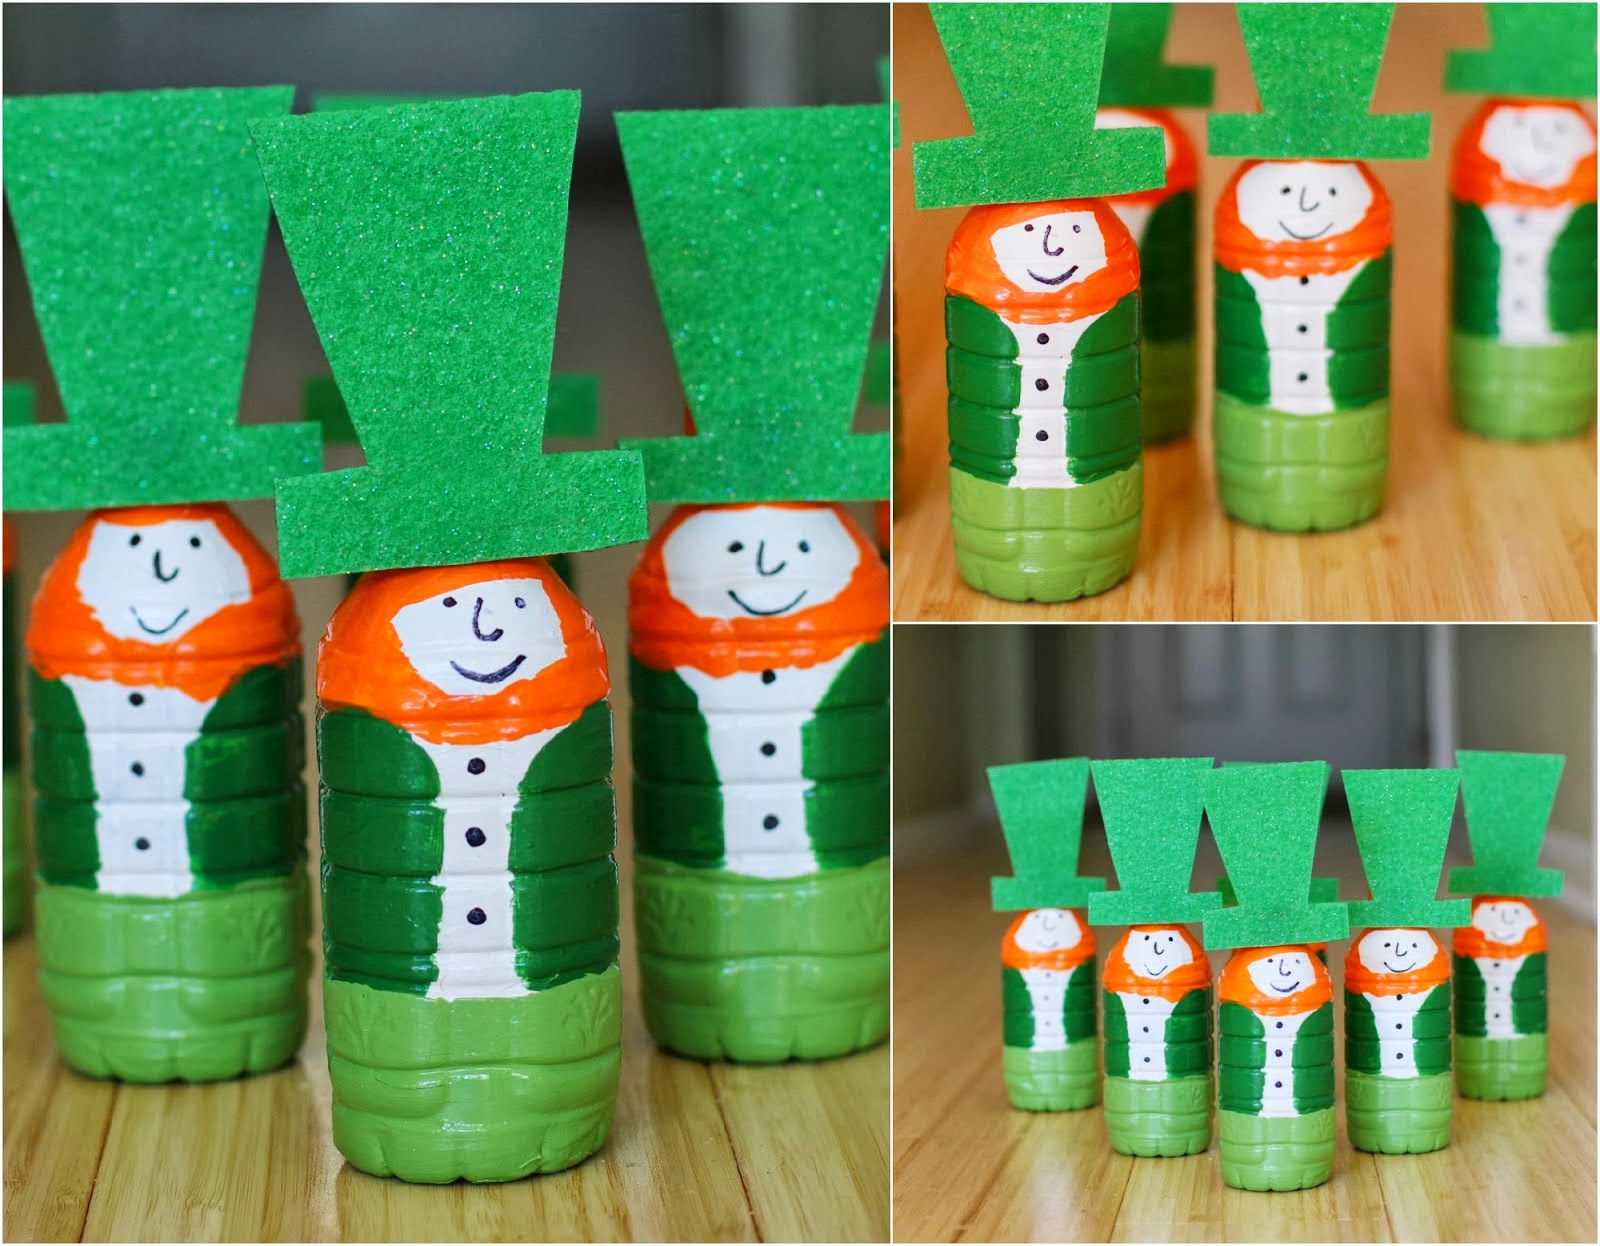 http://salsapie.blogspot.it/2014/02/diy-leprechaun-bowling-pins.html